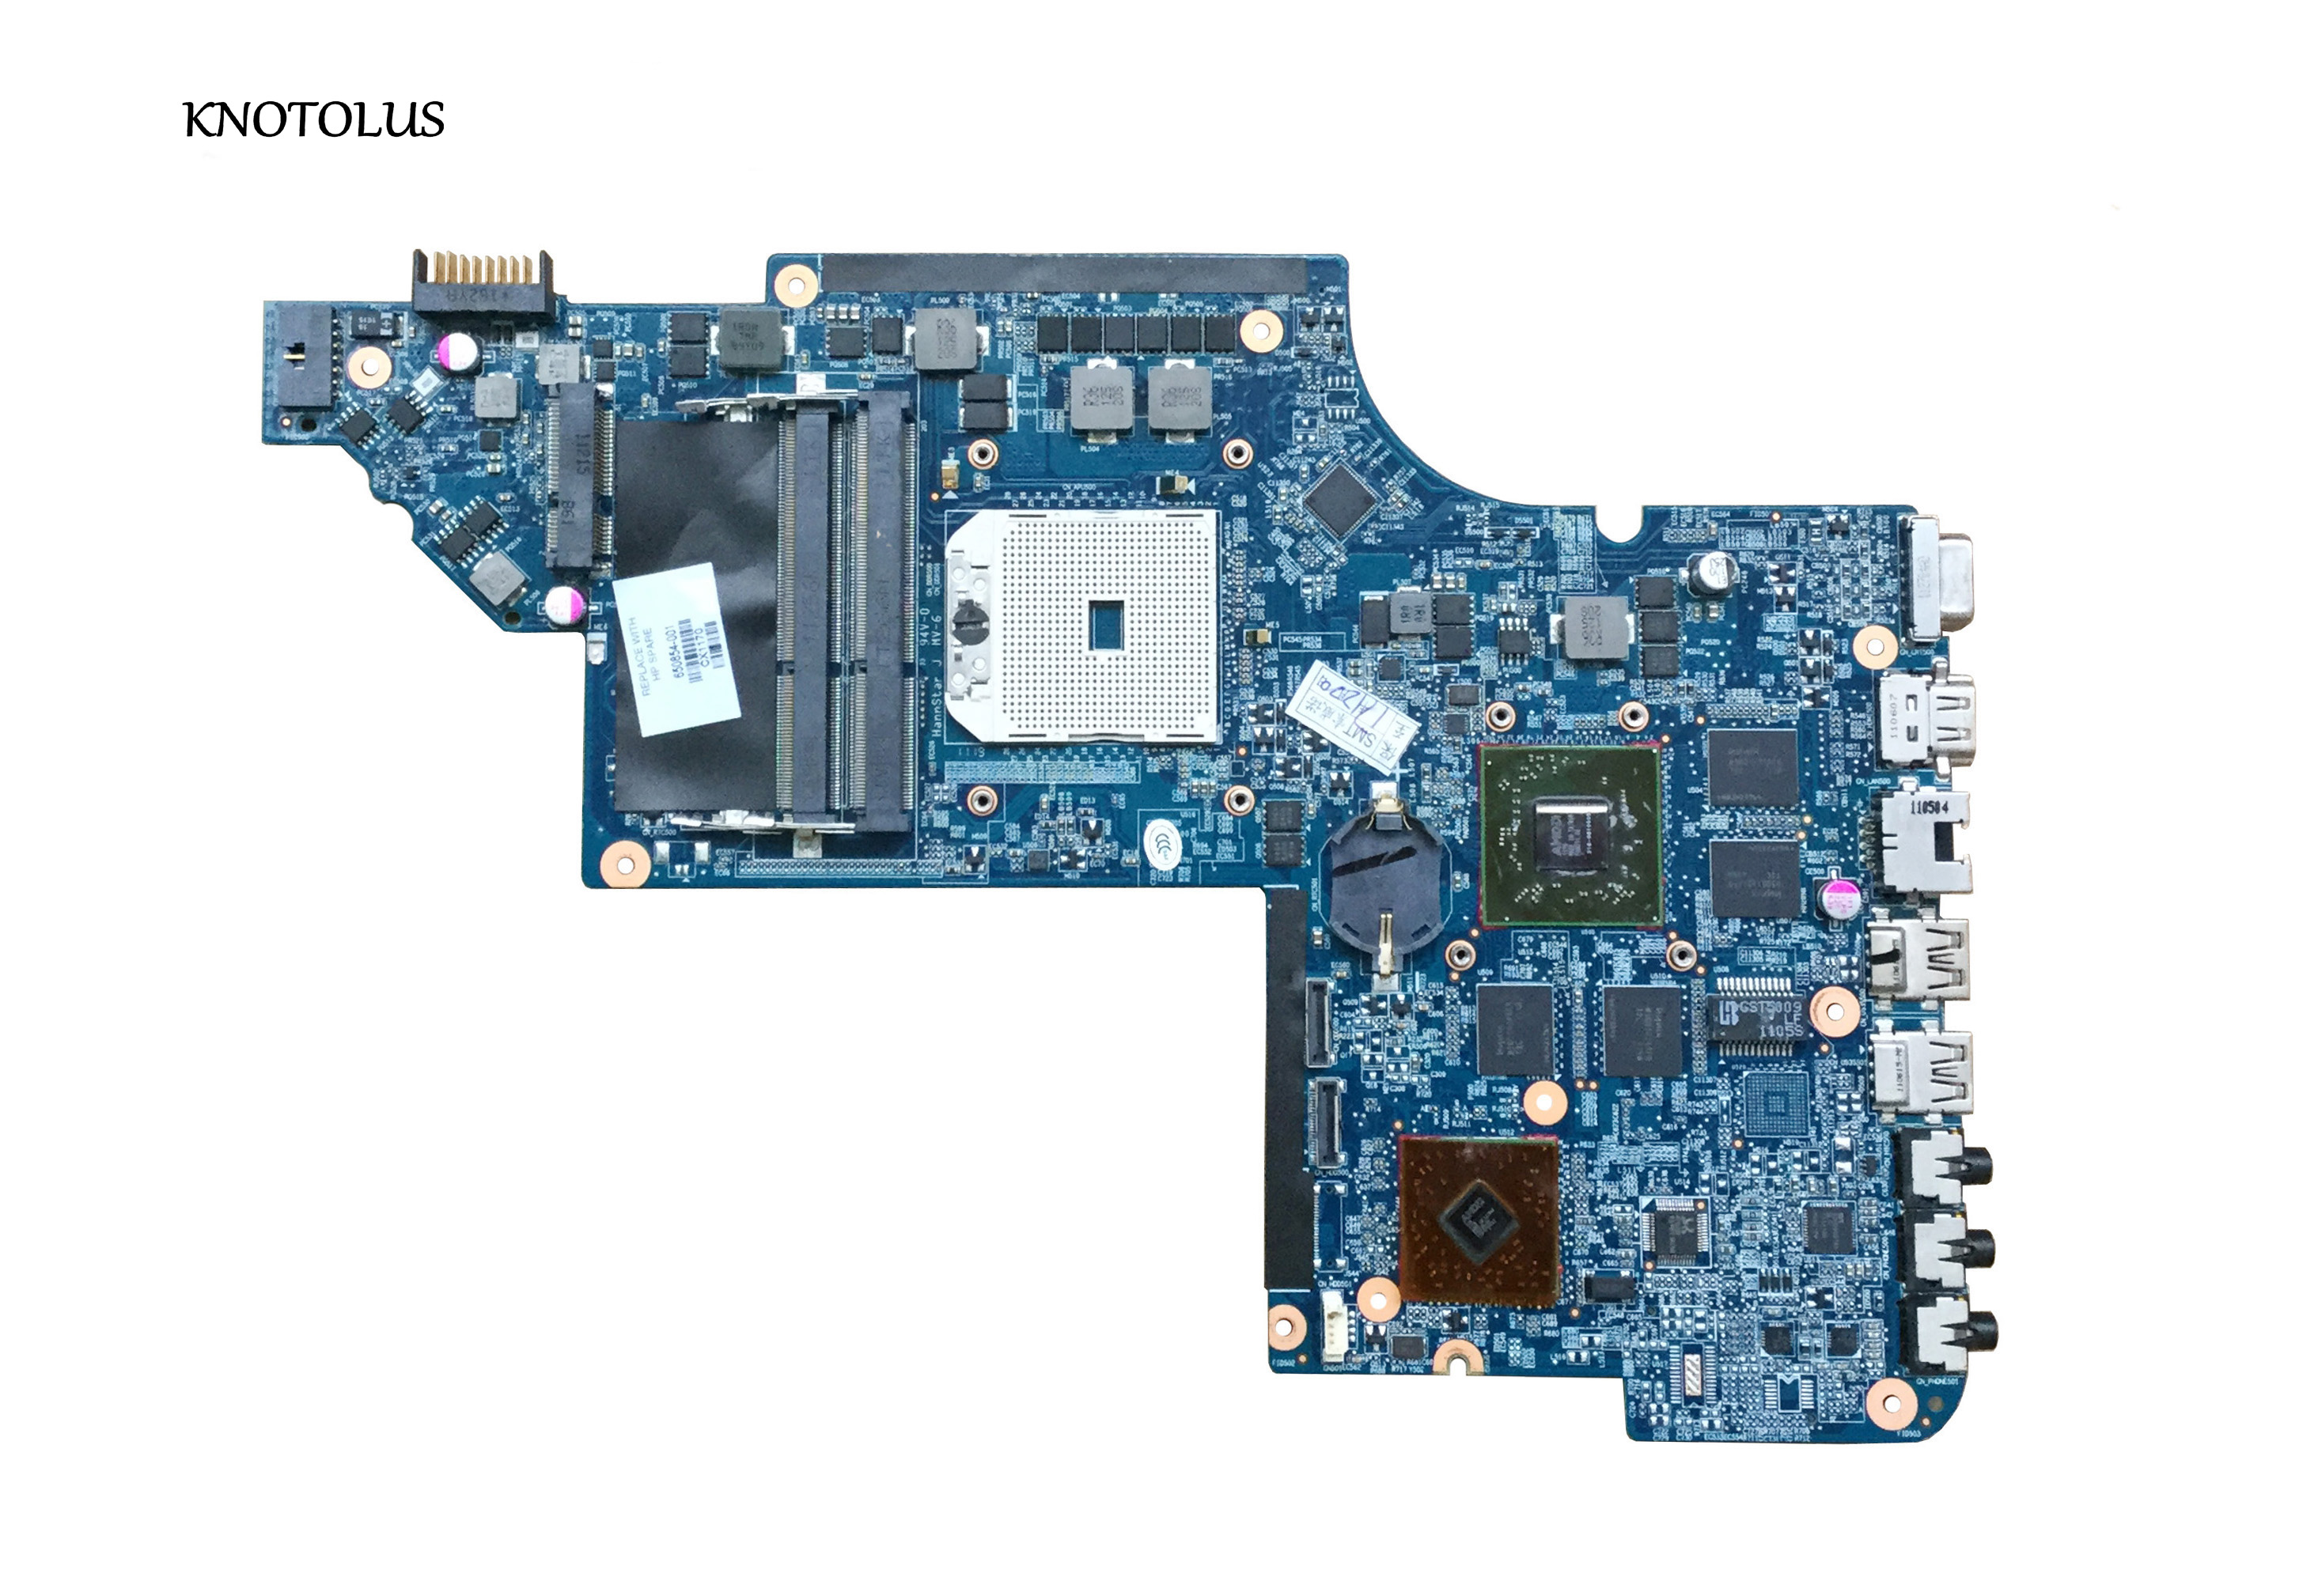 High Quality 650854-001 For HP Pavilion DV6 DV6T DV6-6000 Motherboard HD6750M/1G.All Functions 100% Fully Tested